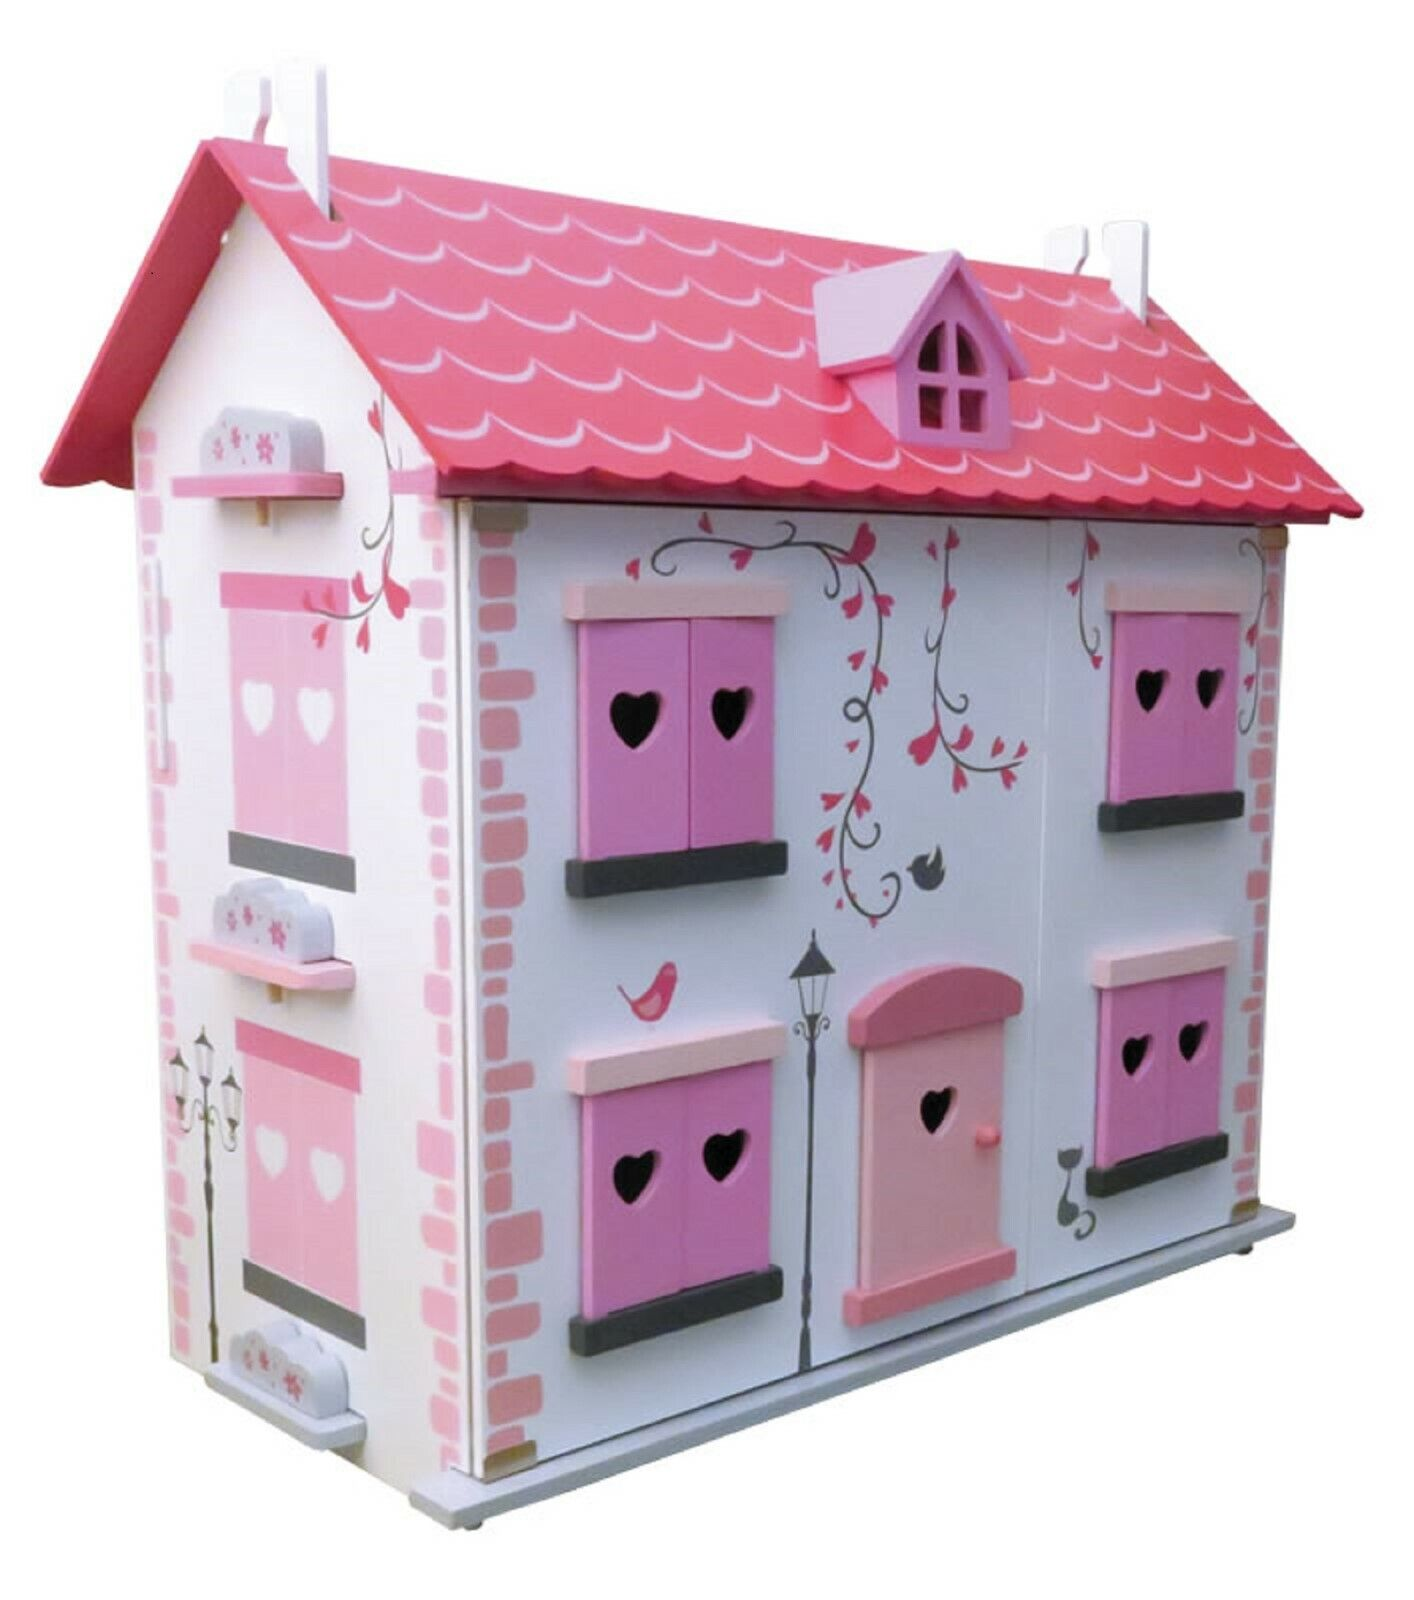 Diamond Dolls House Complete with Furniture - no Screws of Glue Needed